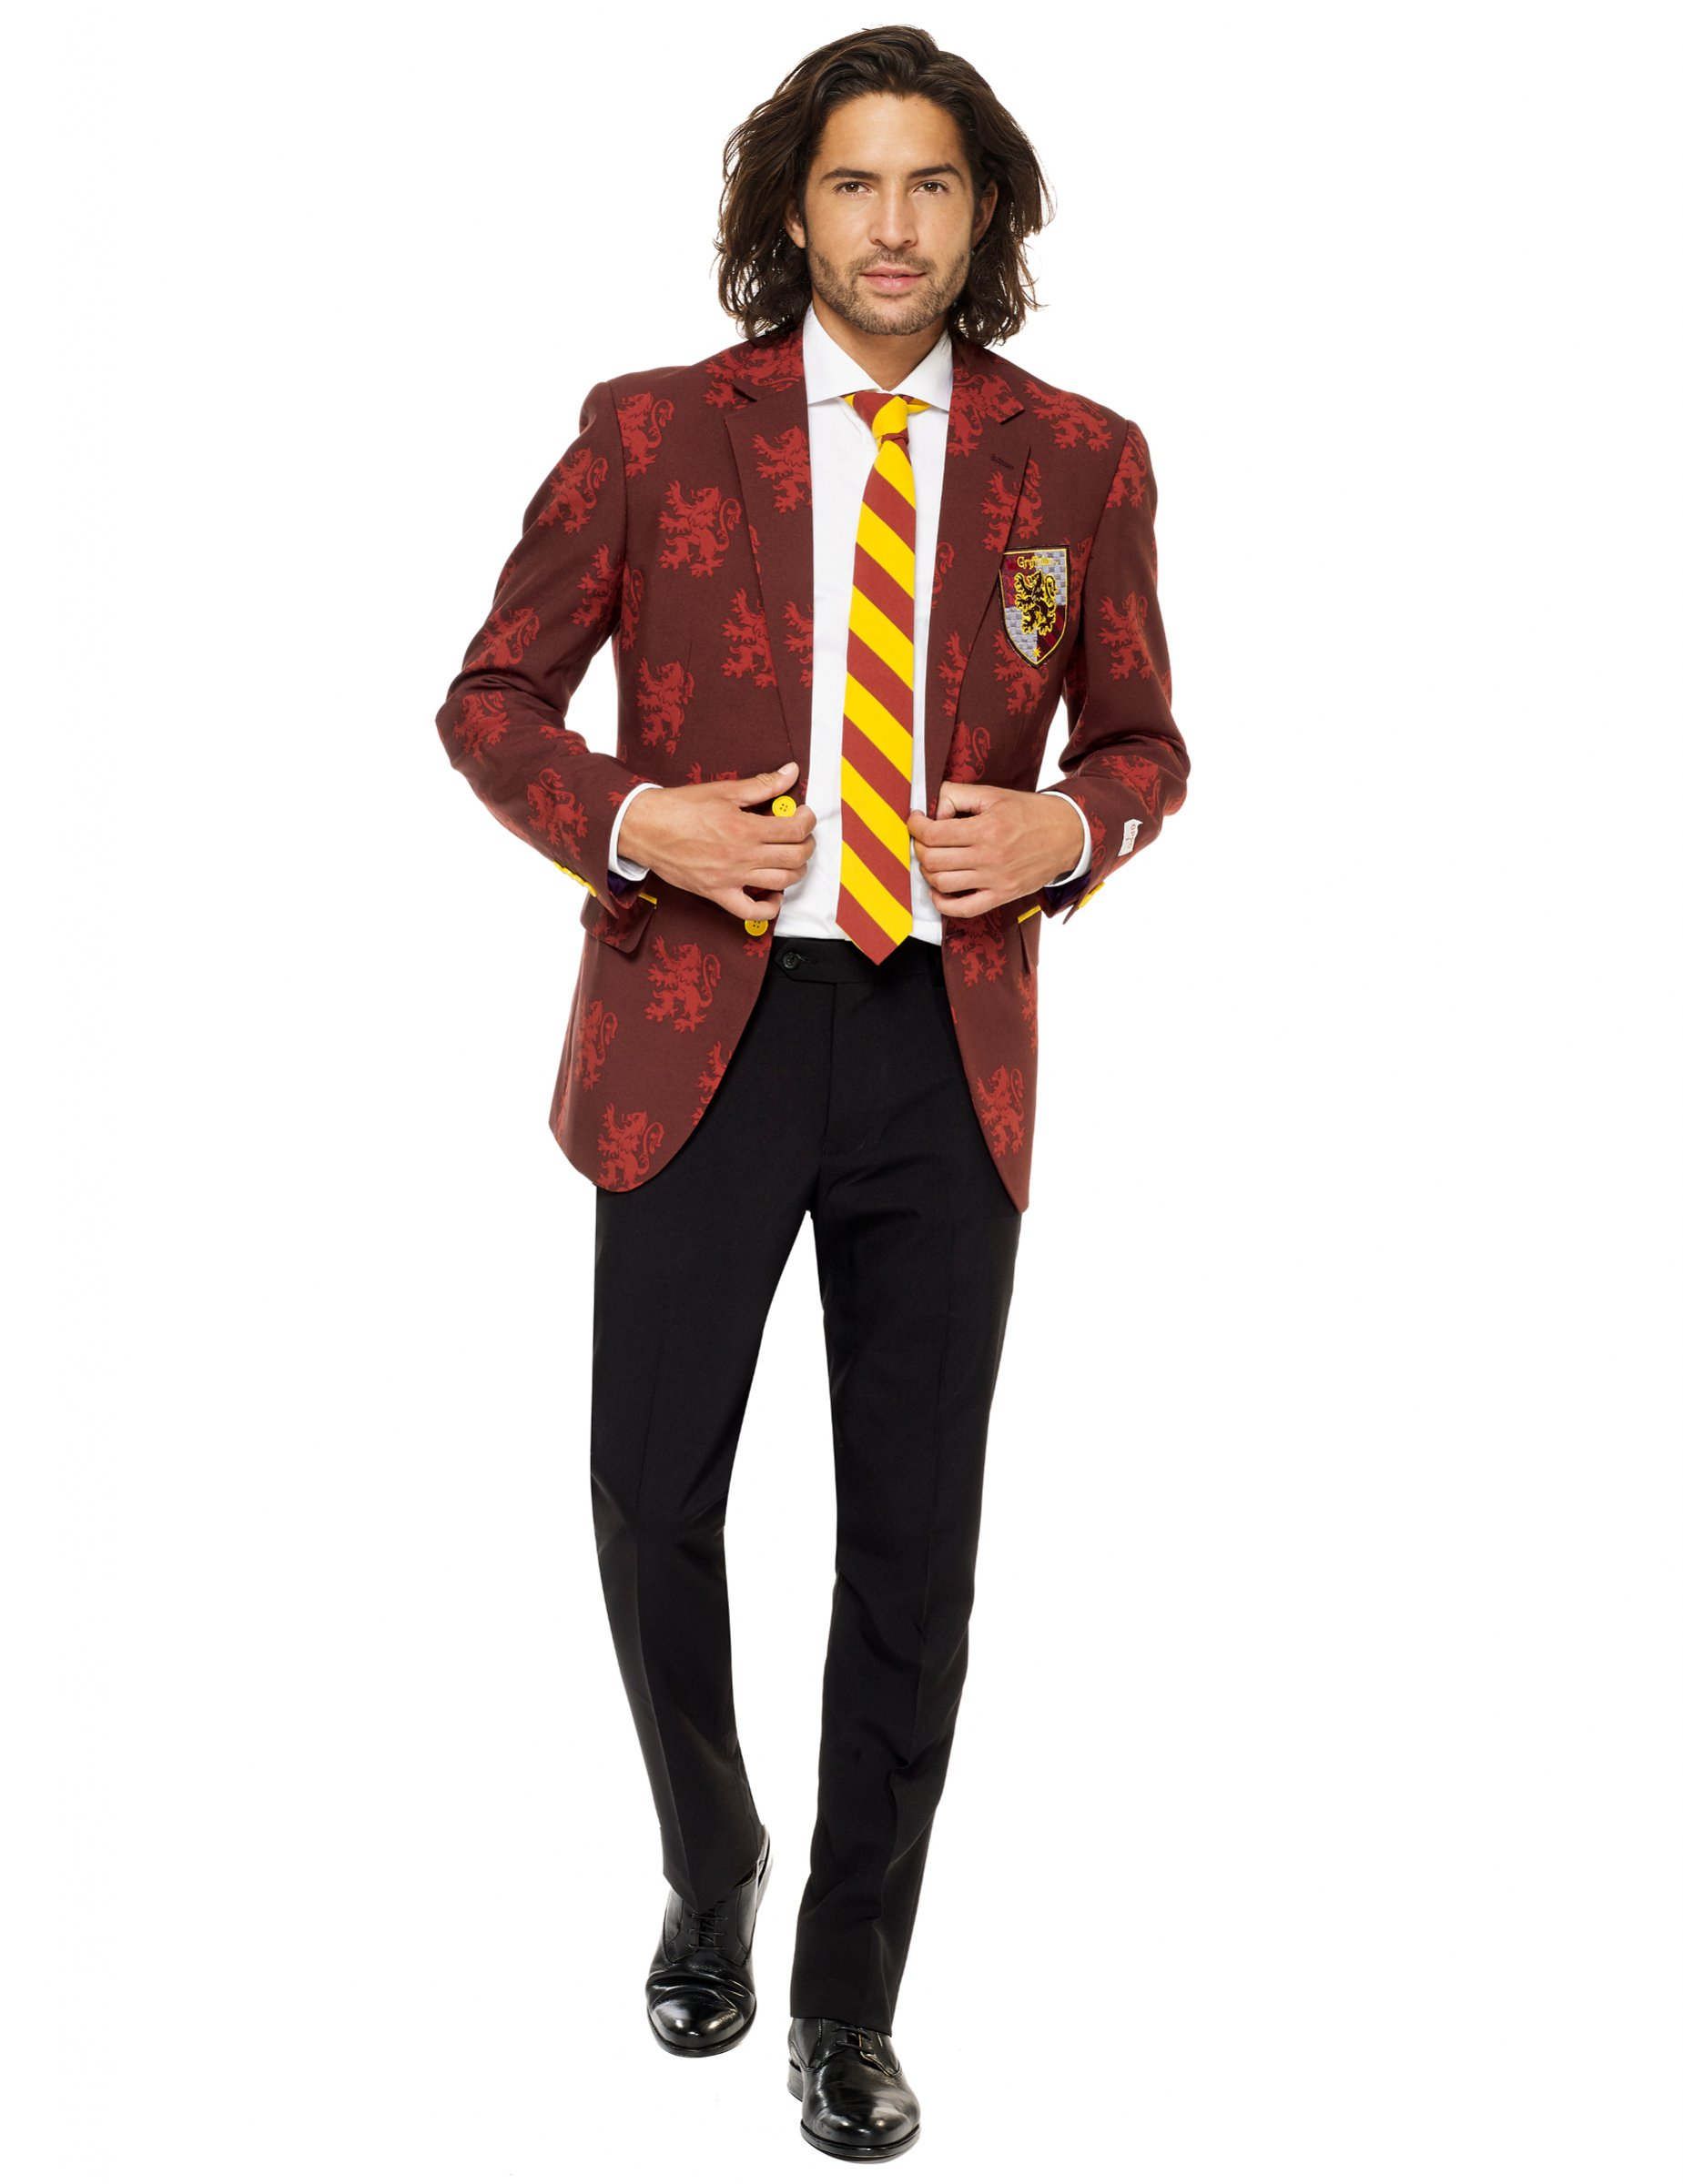 opposuits harry potter anzug f r herren halloween rot gelb schwarz g nstige faschings. Black Bedroom Furniture Sets. Home Design Ideas